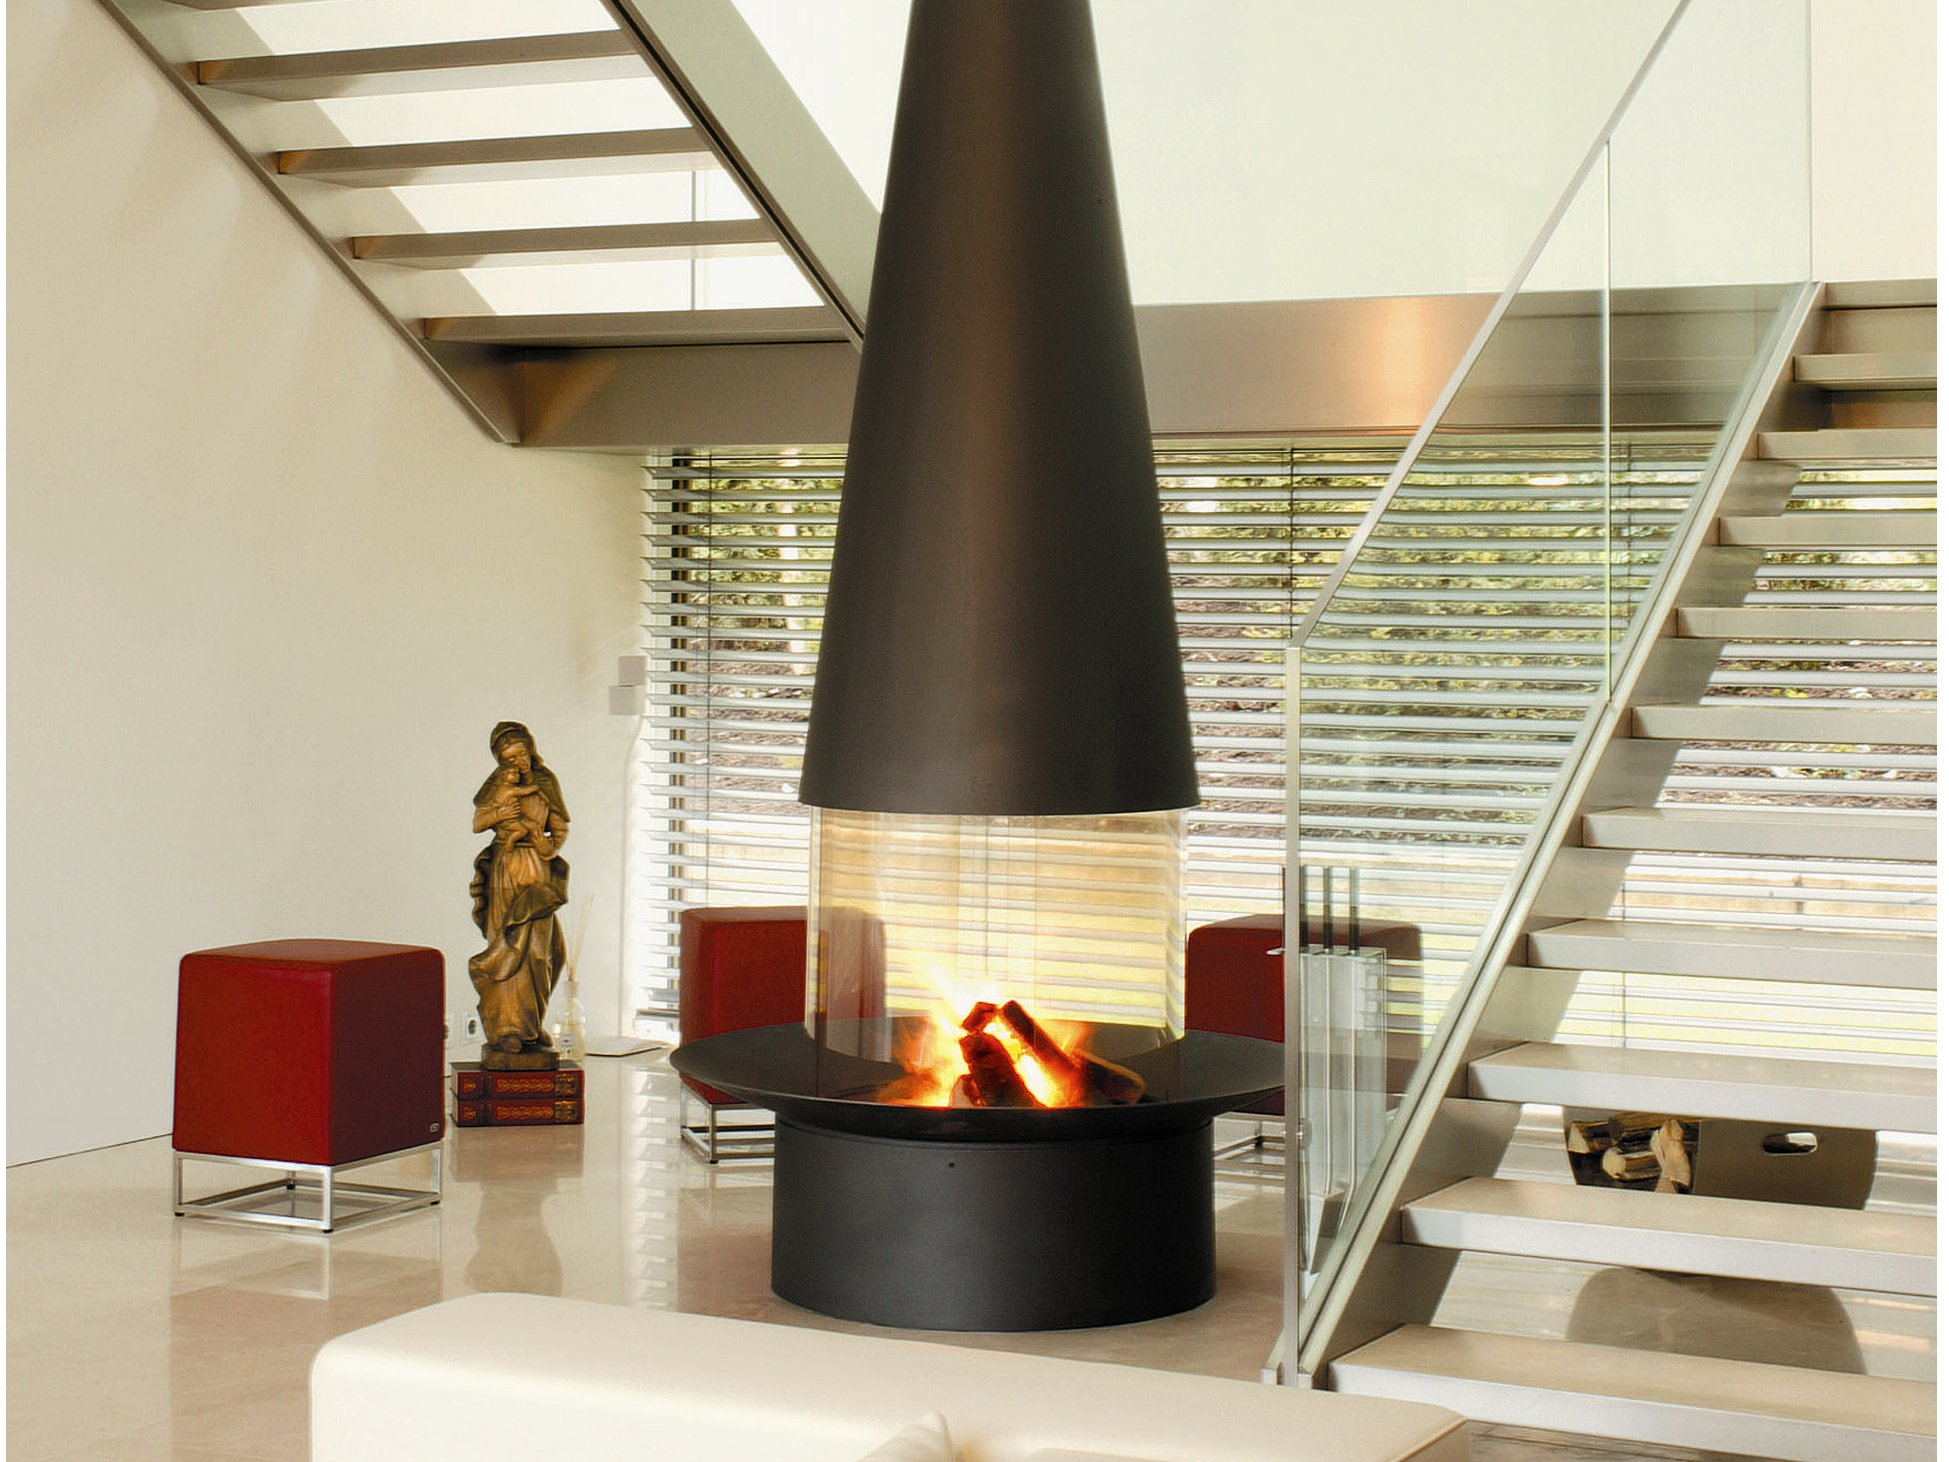 central hanging fireplace filiofocus 2000 central by focus design dominique i. Black Bedroom Furniture Sets. Home Design Ideas